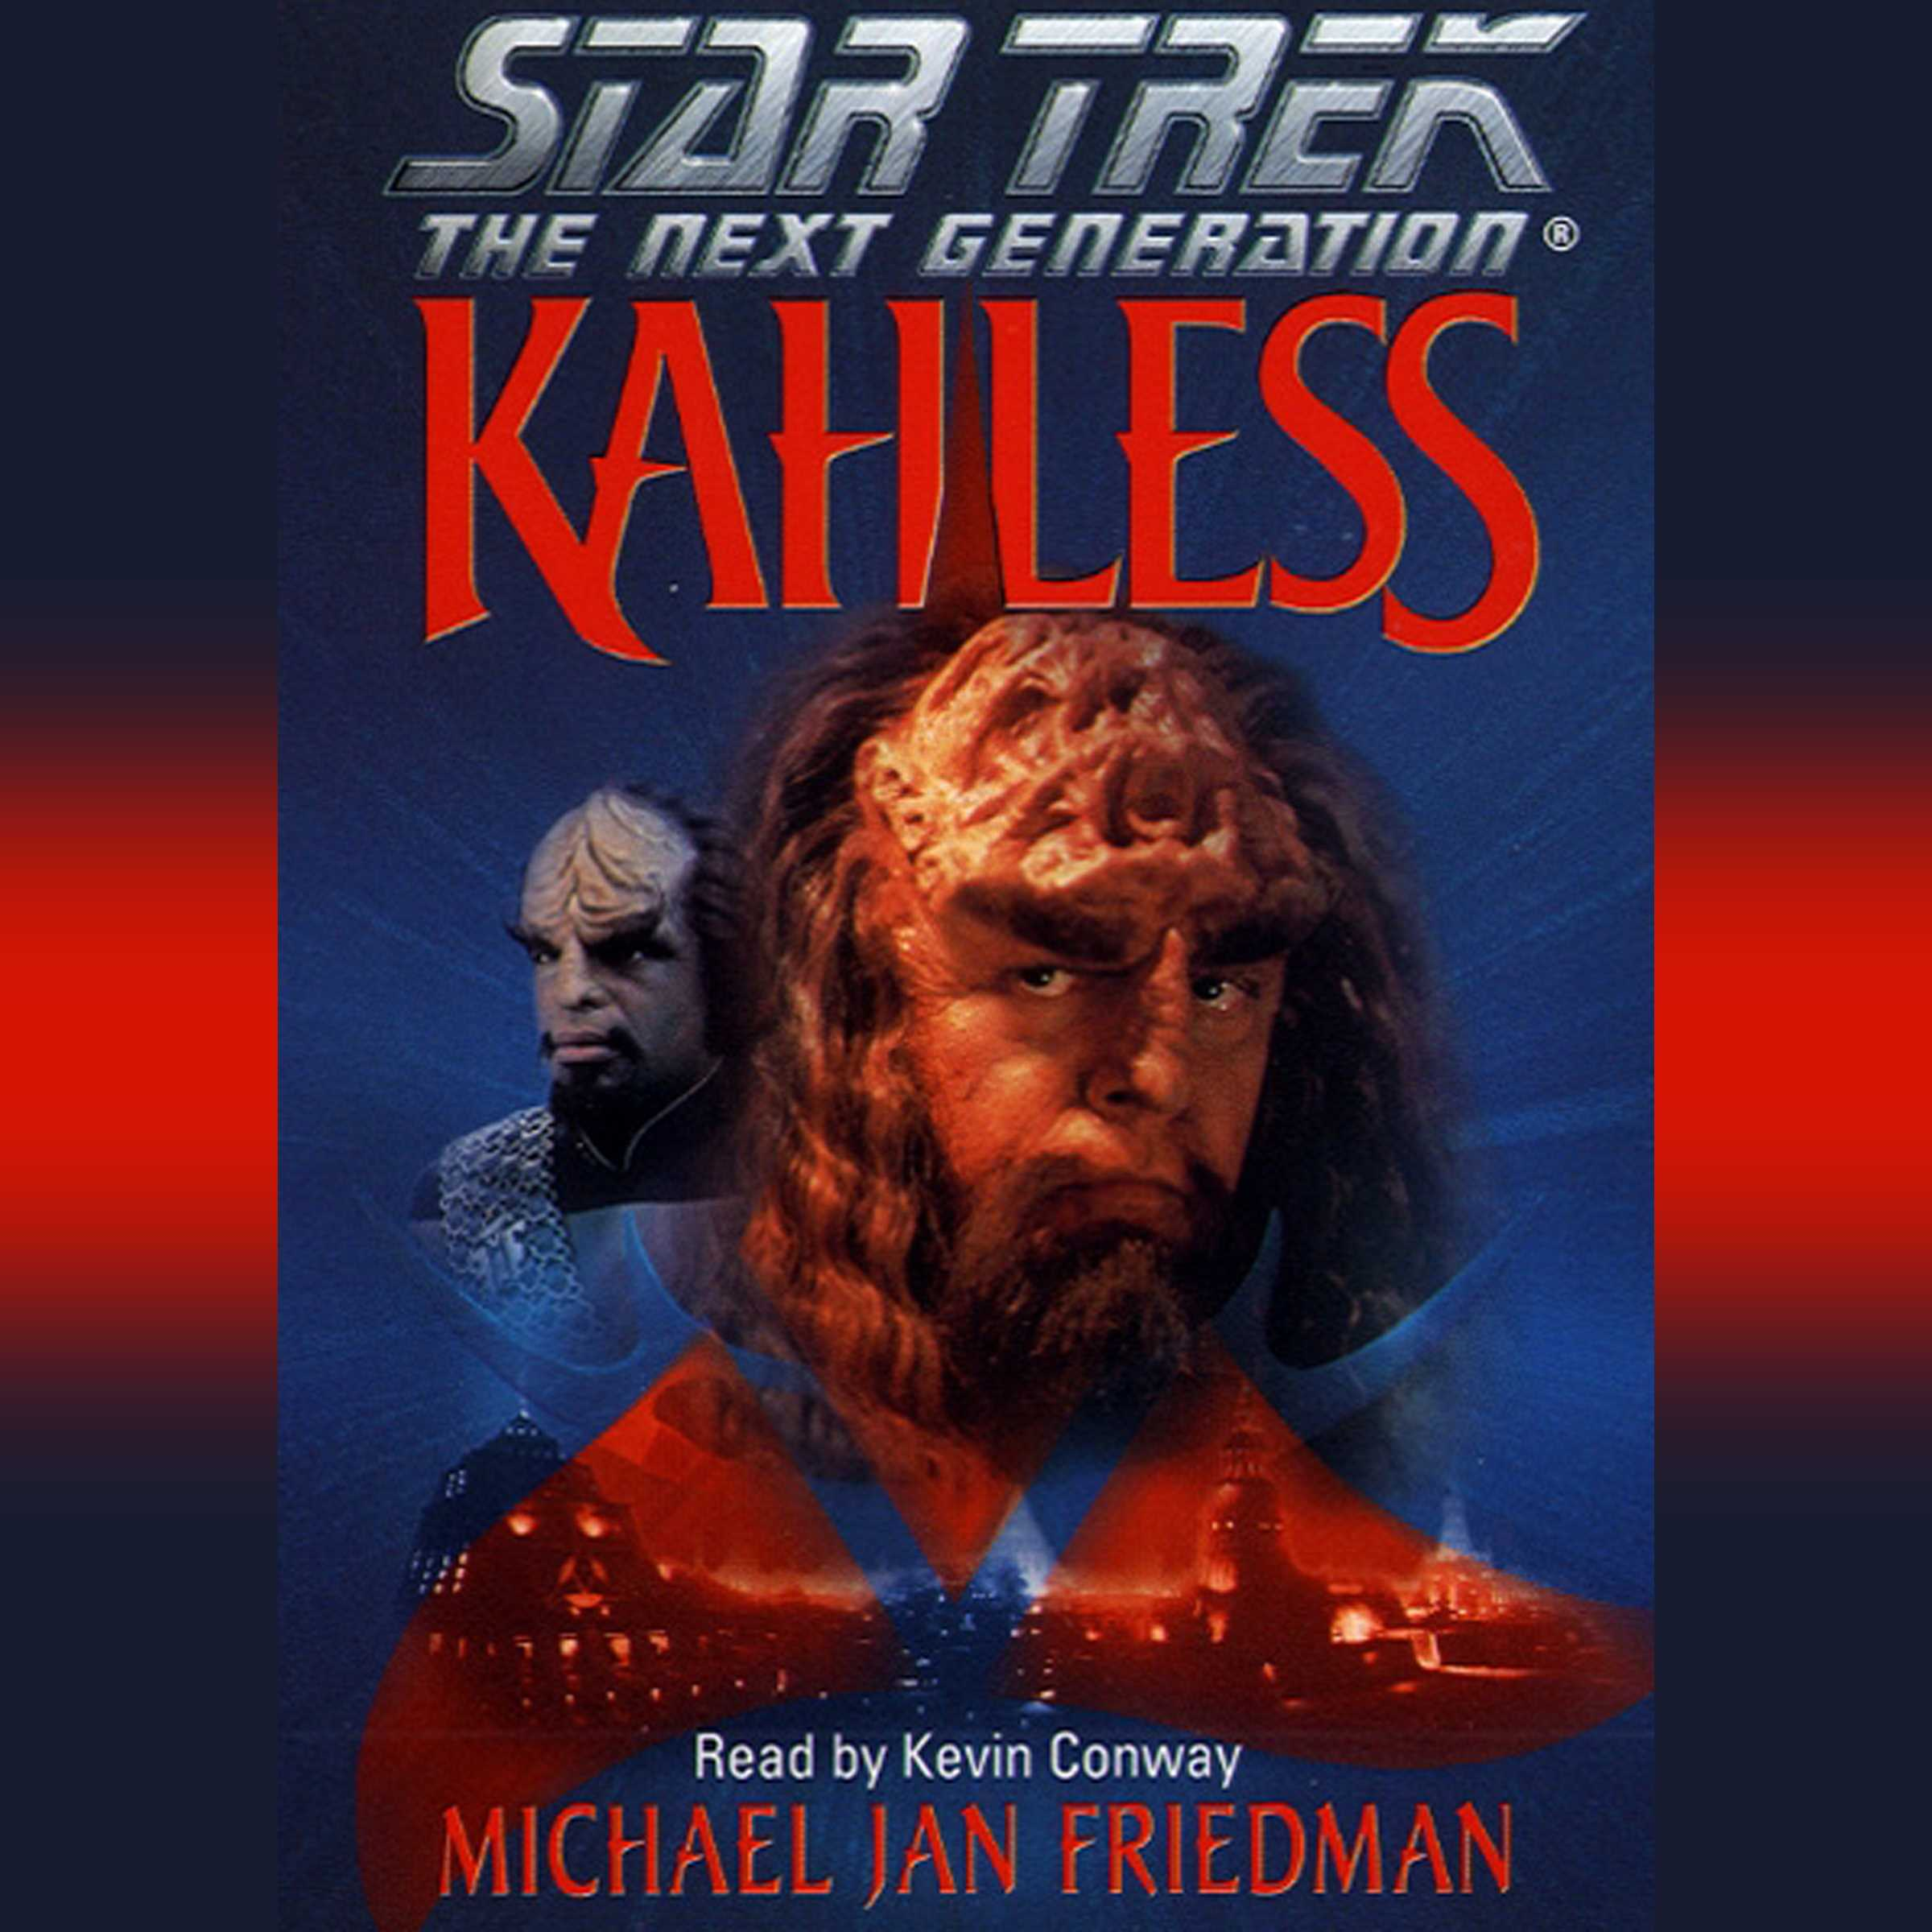 Star trek the next generation kahless 9780743546287 hr